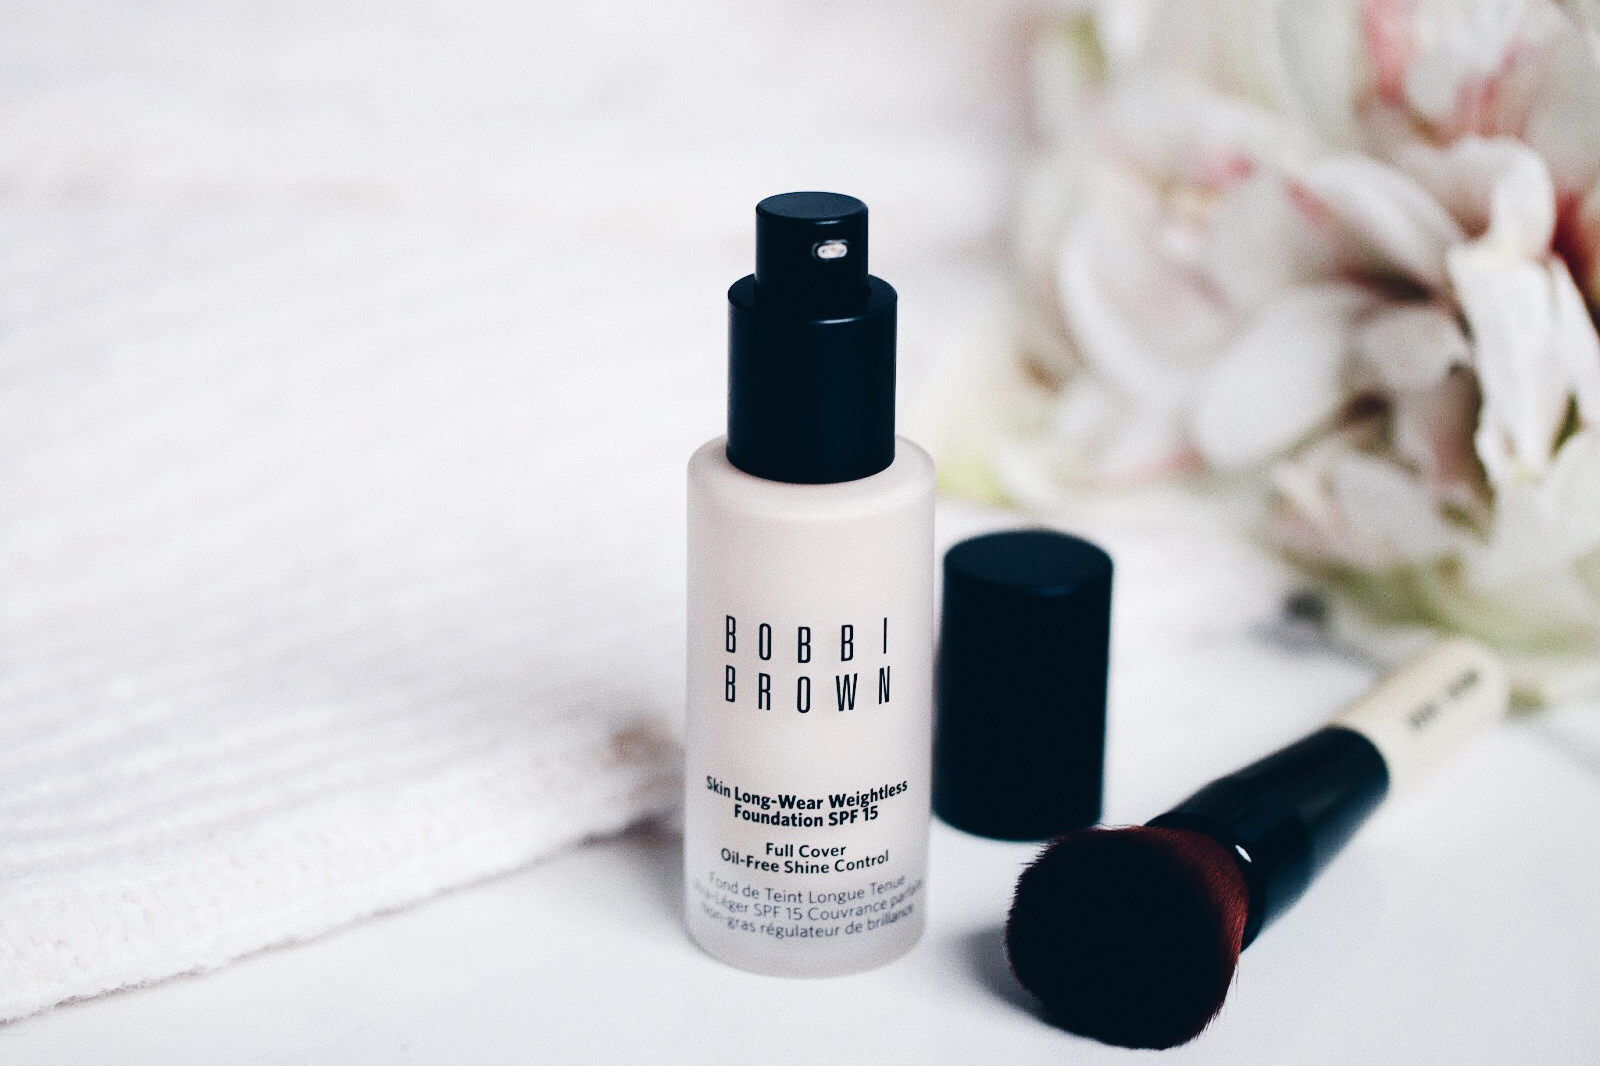 bobbi brown long wear wieghtless foundation fond de teint avis test